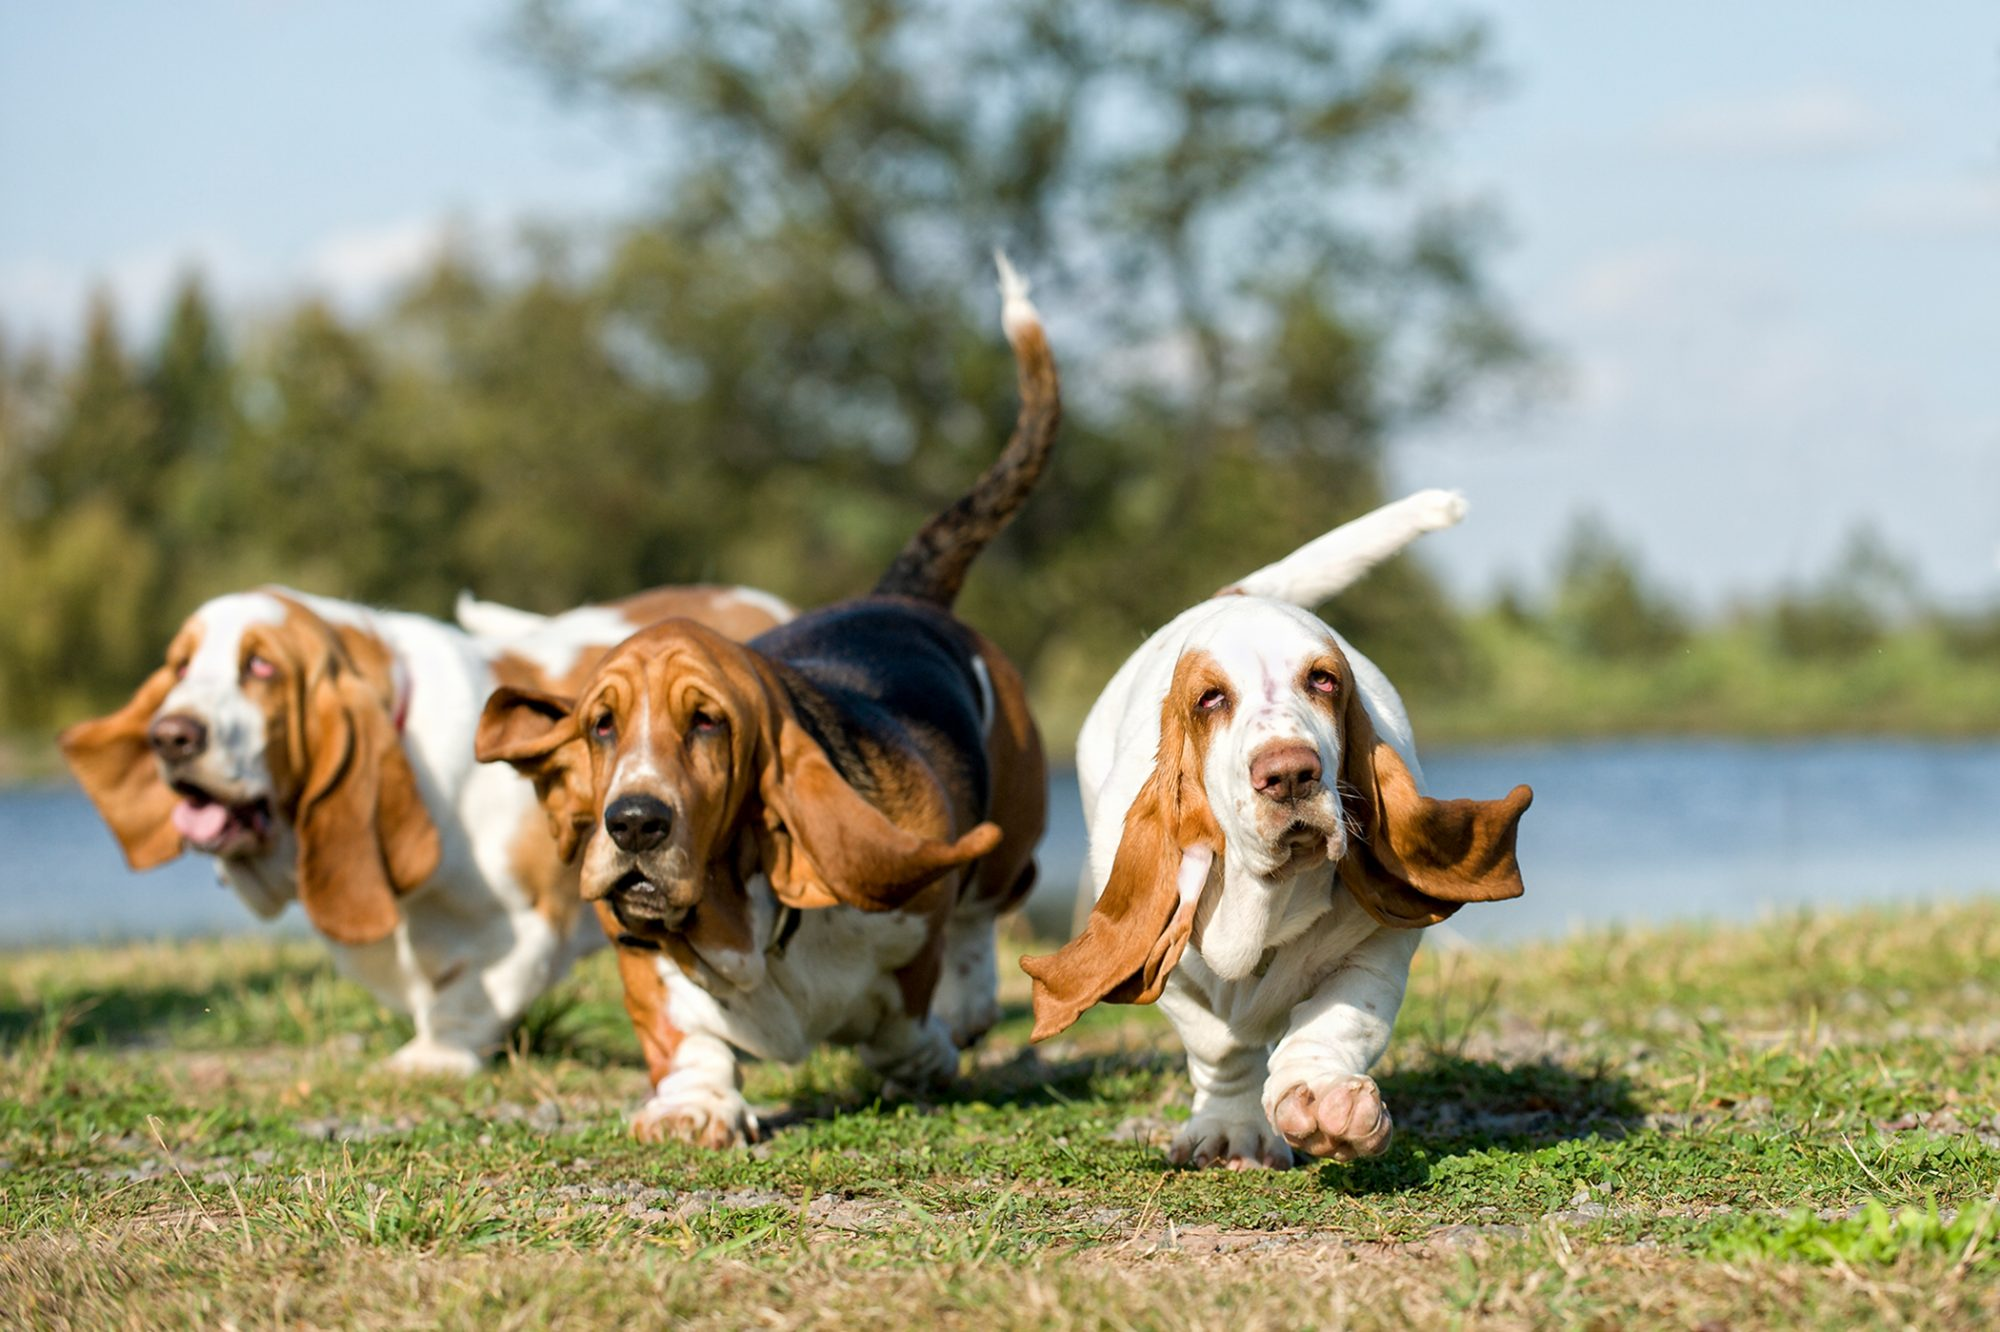 three Basset Hounds running in a park